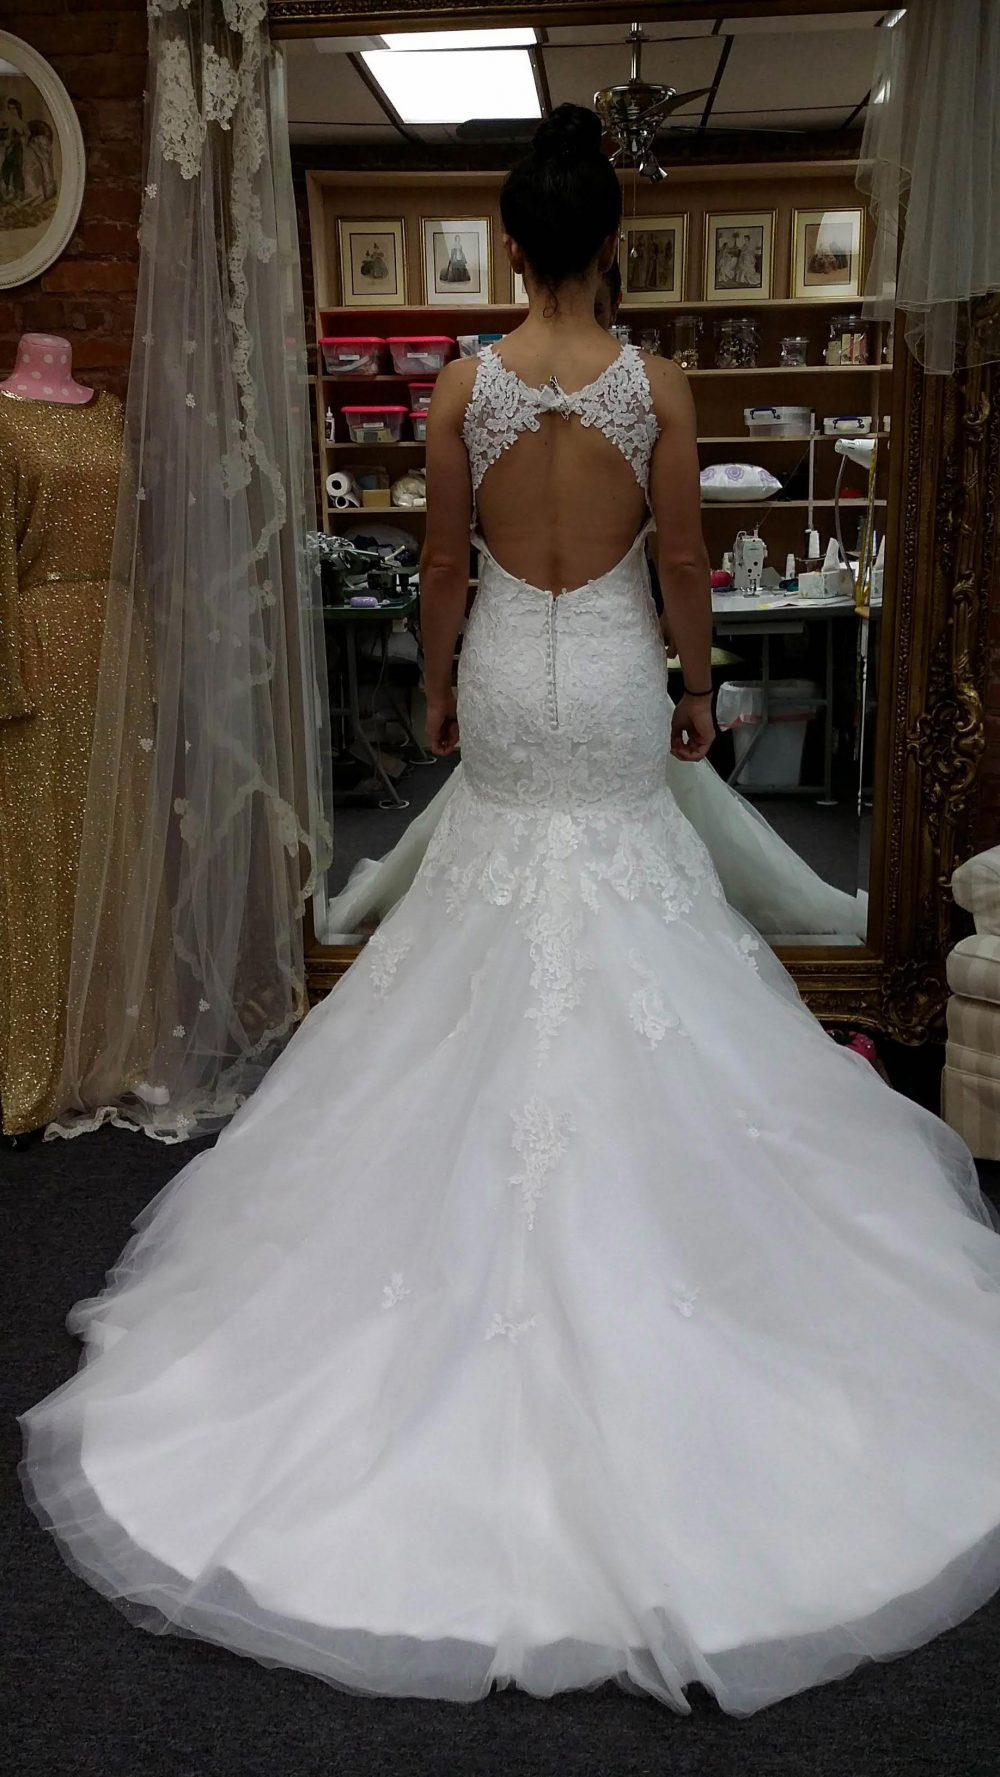 Adjusting the backside on a wedding gown